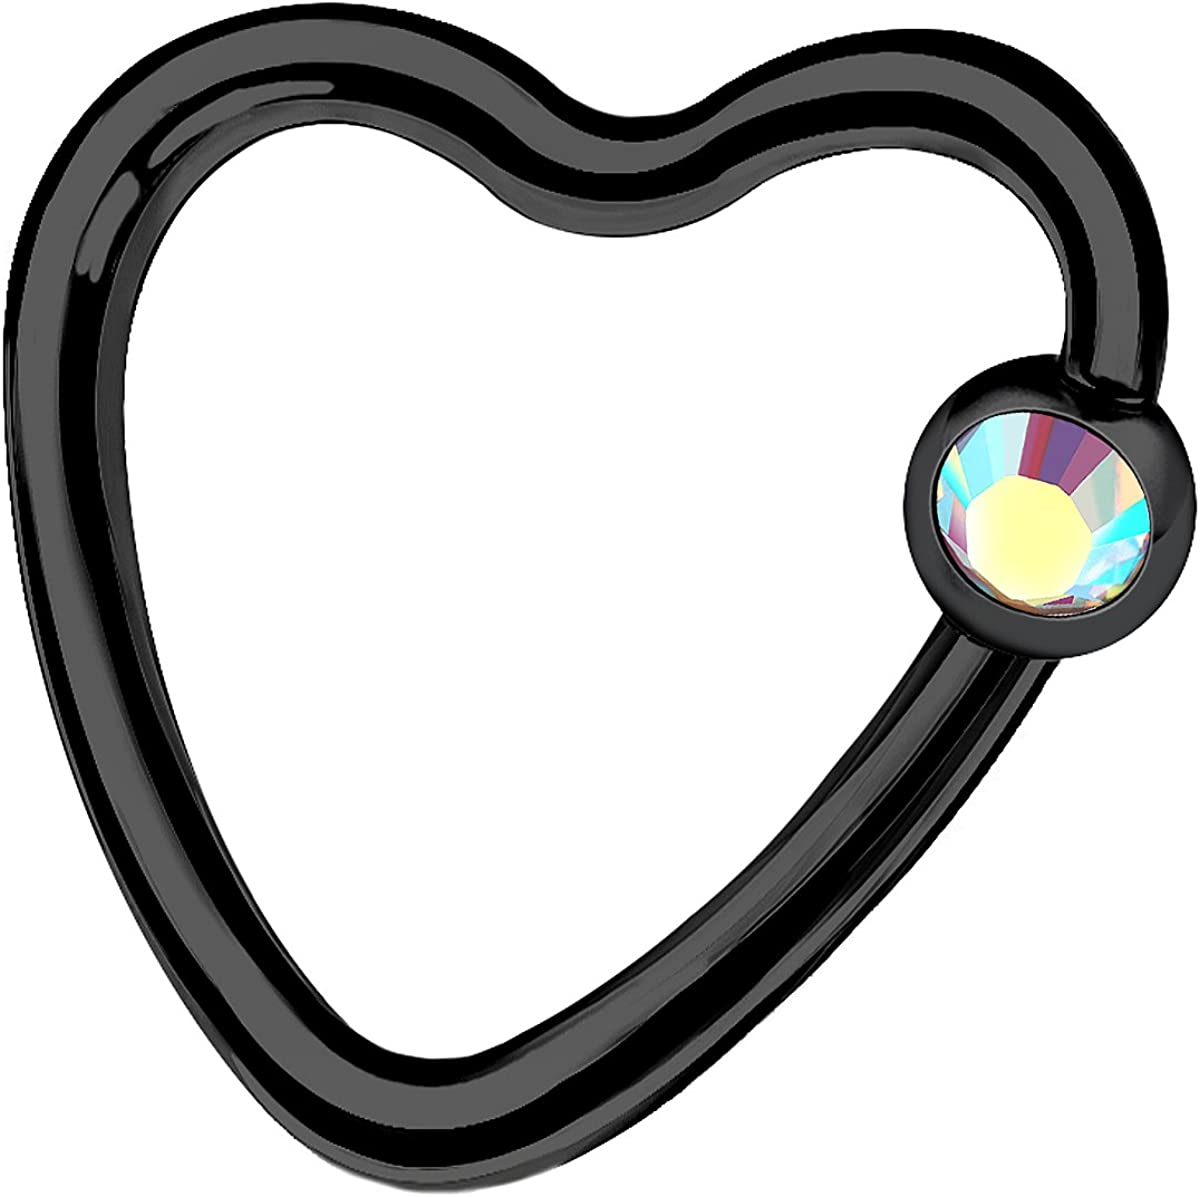 MATIGA Black Anodized Heart 16g 3/8 10mm Captive Bead Ring Piercing Jewelry Tragus Septum Eyebrow Cartilage 3mm Crystal More Choices